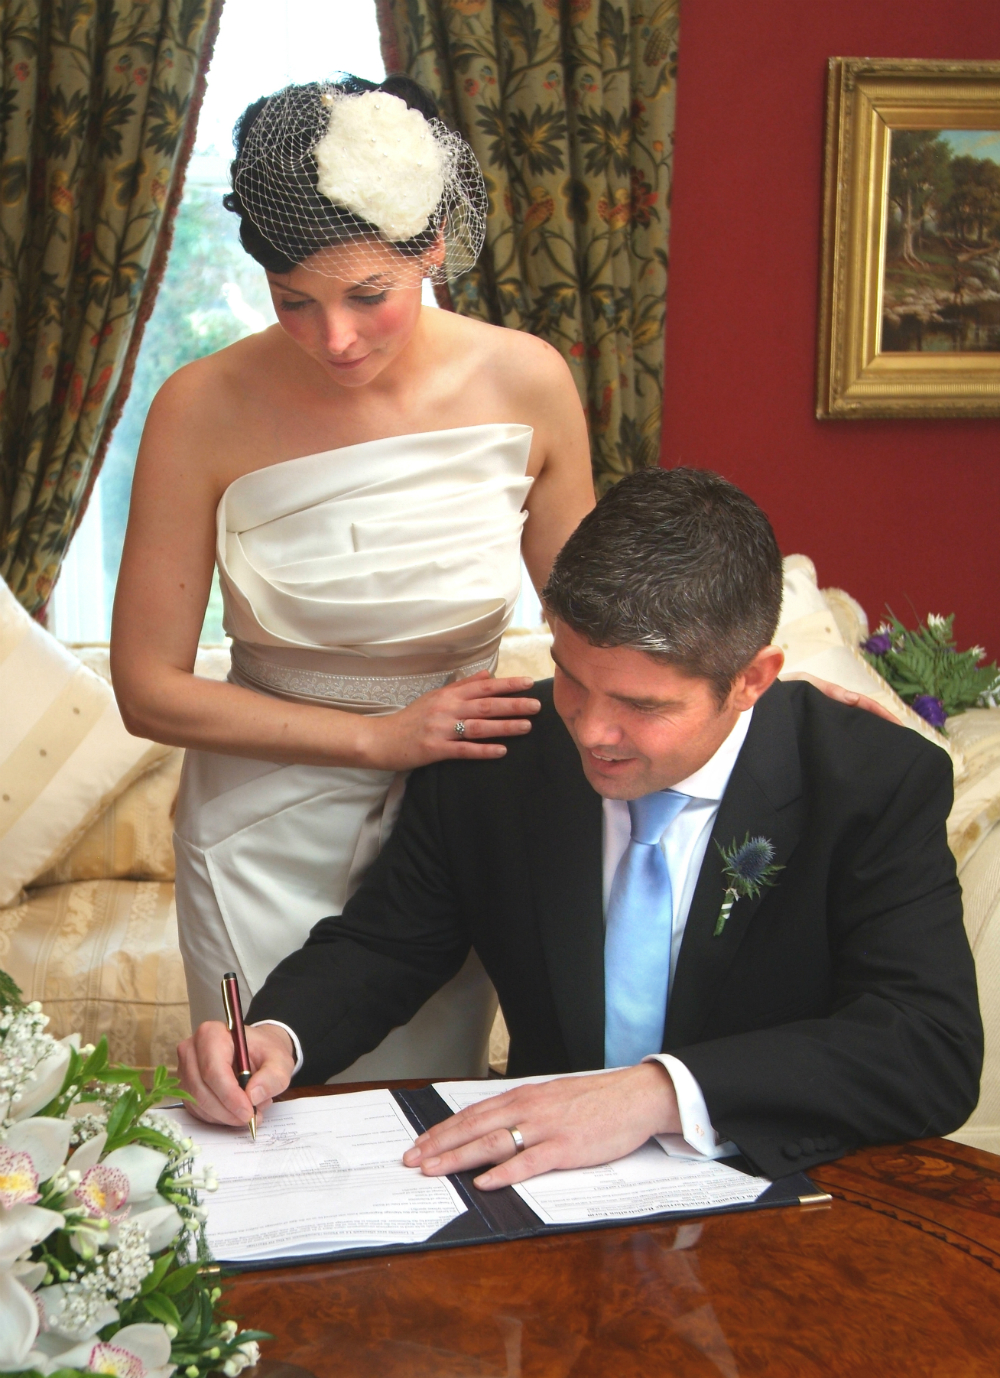 Signing the dotted line... we're married